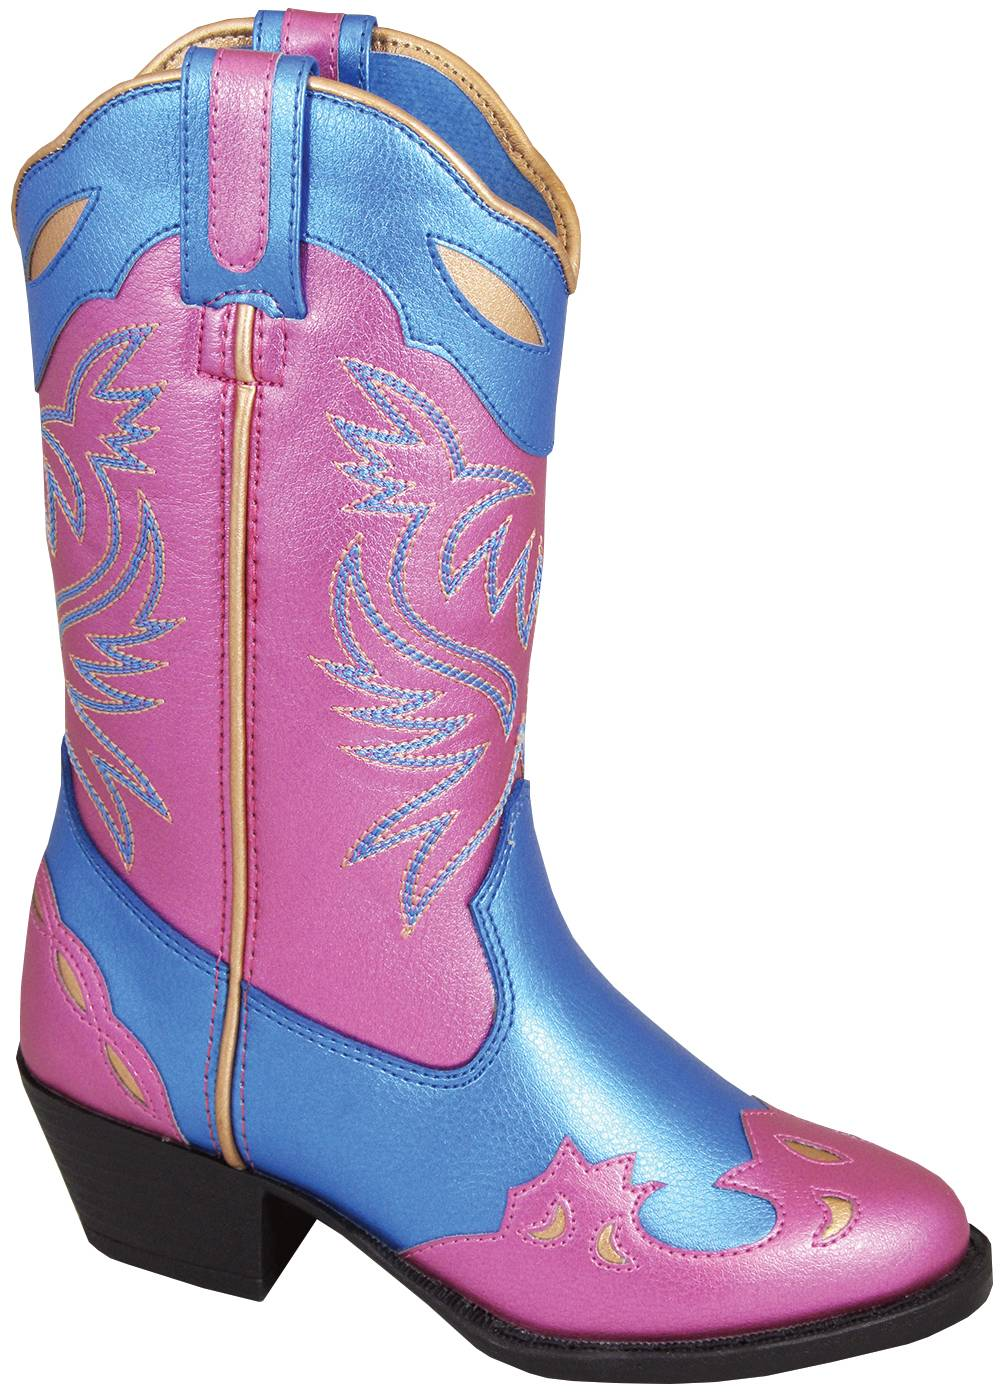 Smoky Mountain Lila Boots - Childrens - Pink/Blue